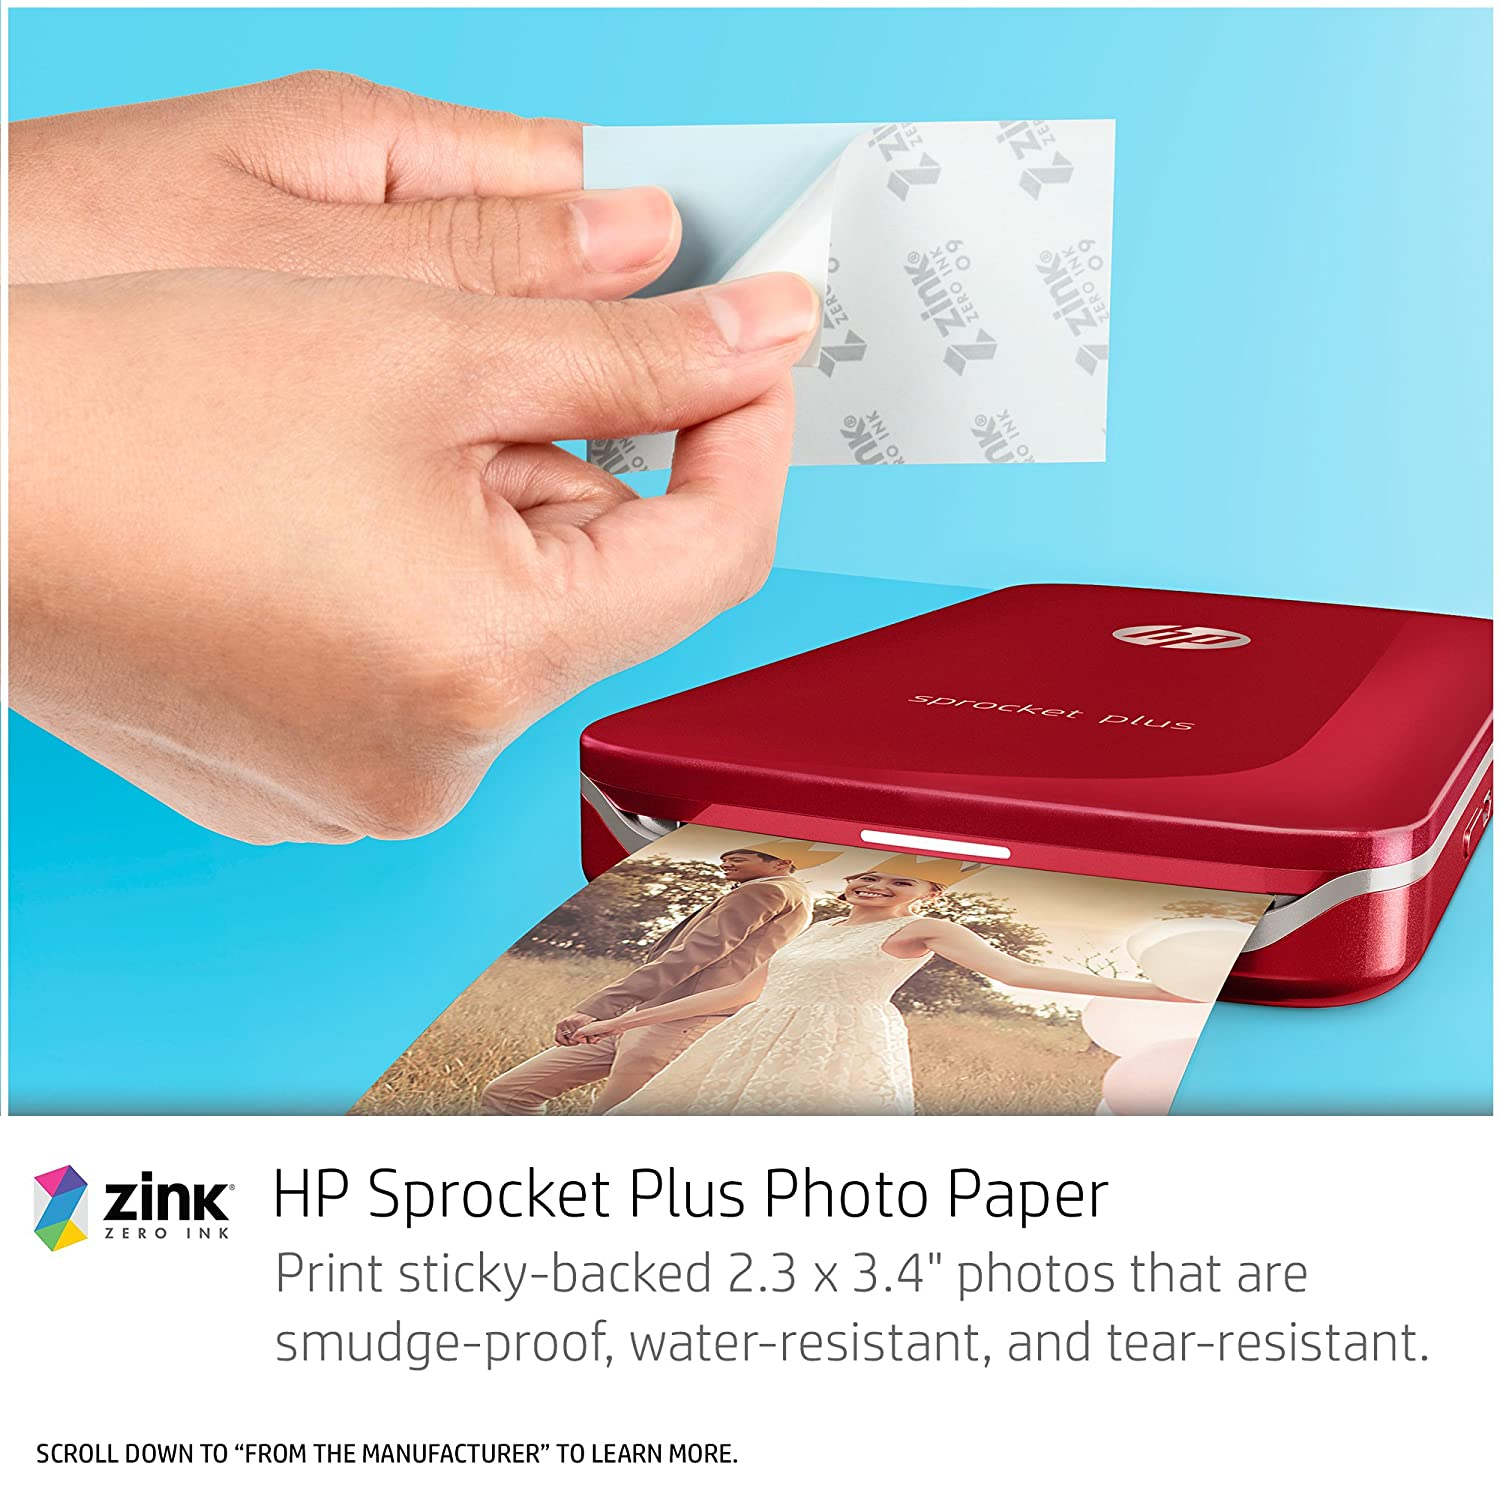 HP Sprocket Plus Instant Photo Printer Print 30/% Larger Photos on 2.3x3.4 Sticky-Backed Paper 2FR85A White